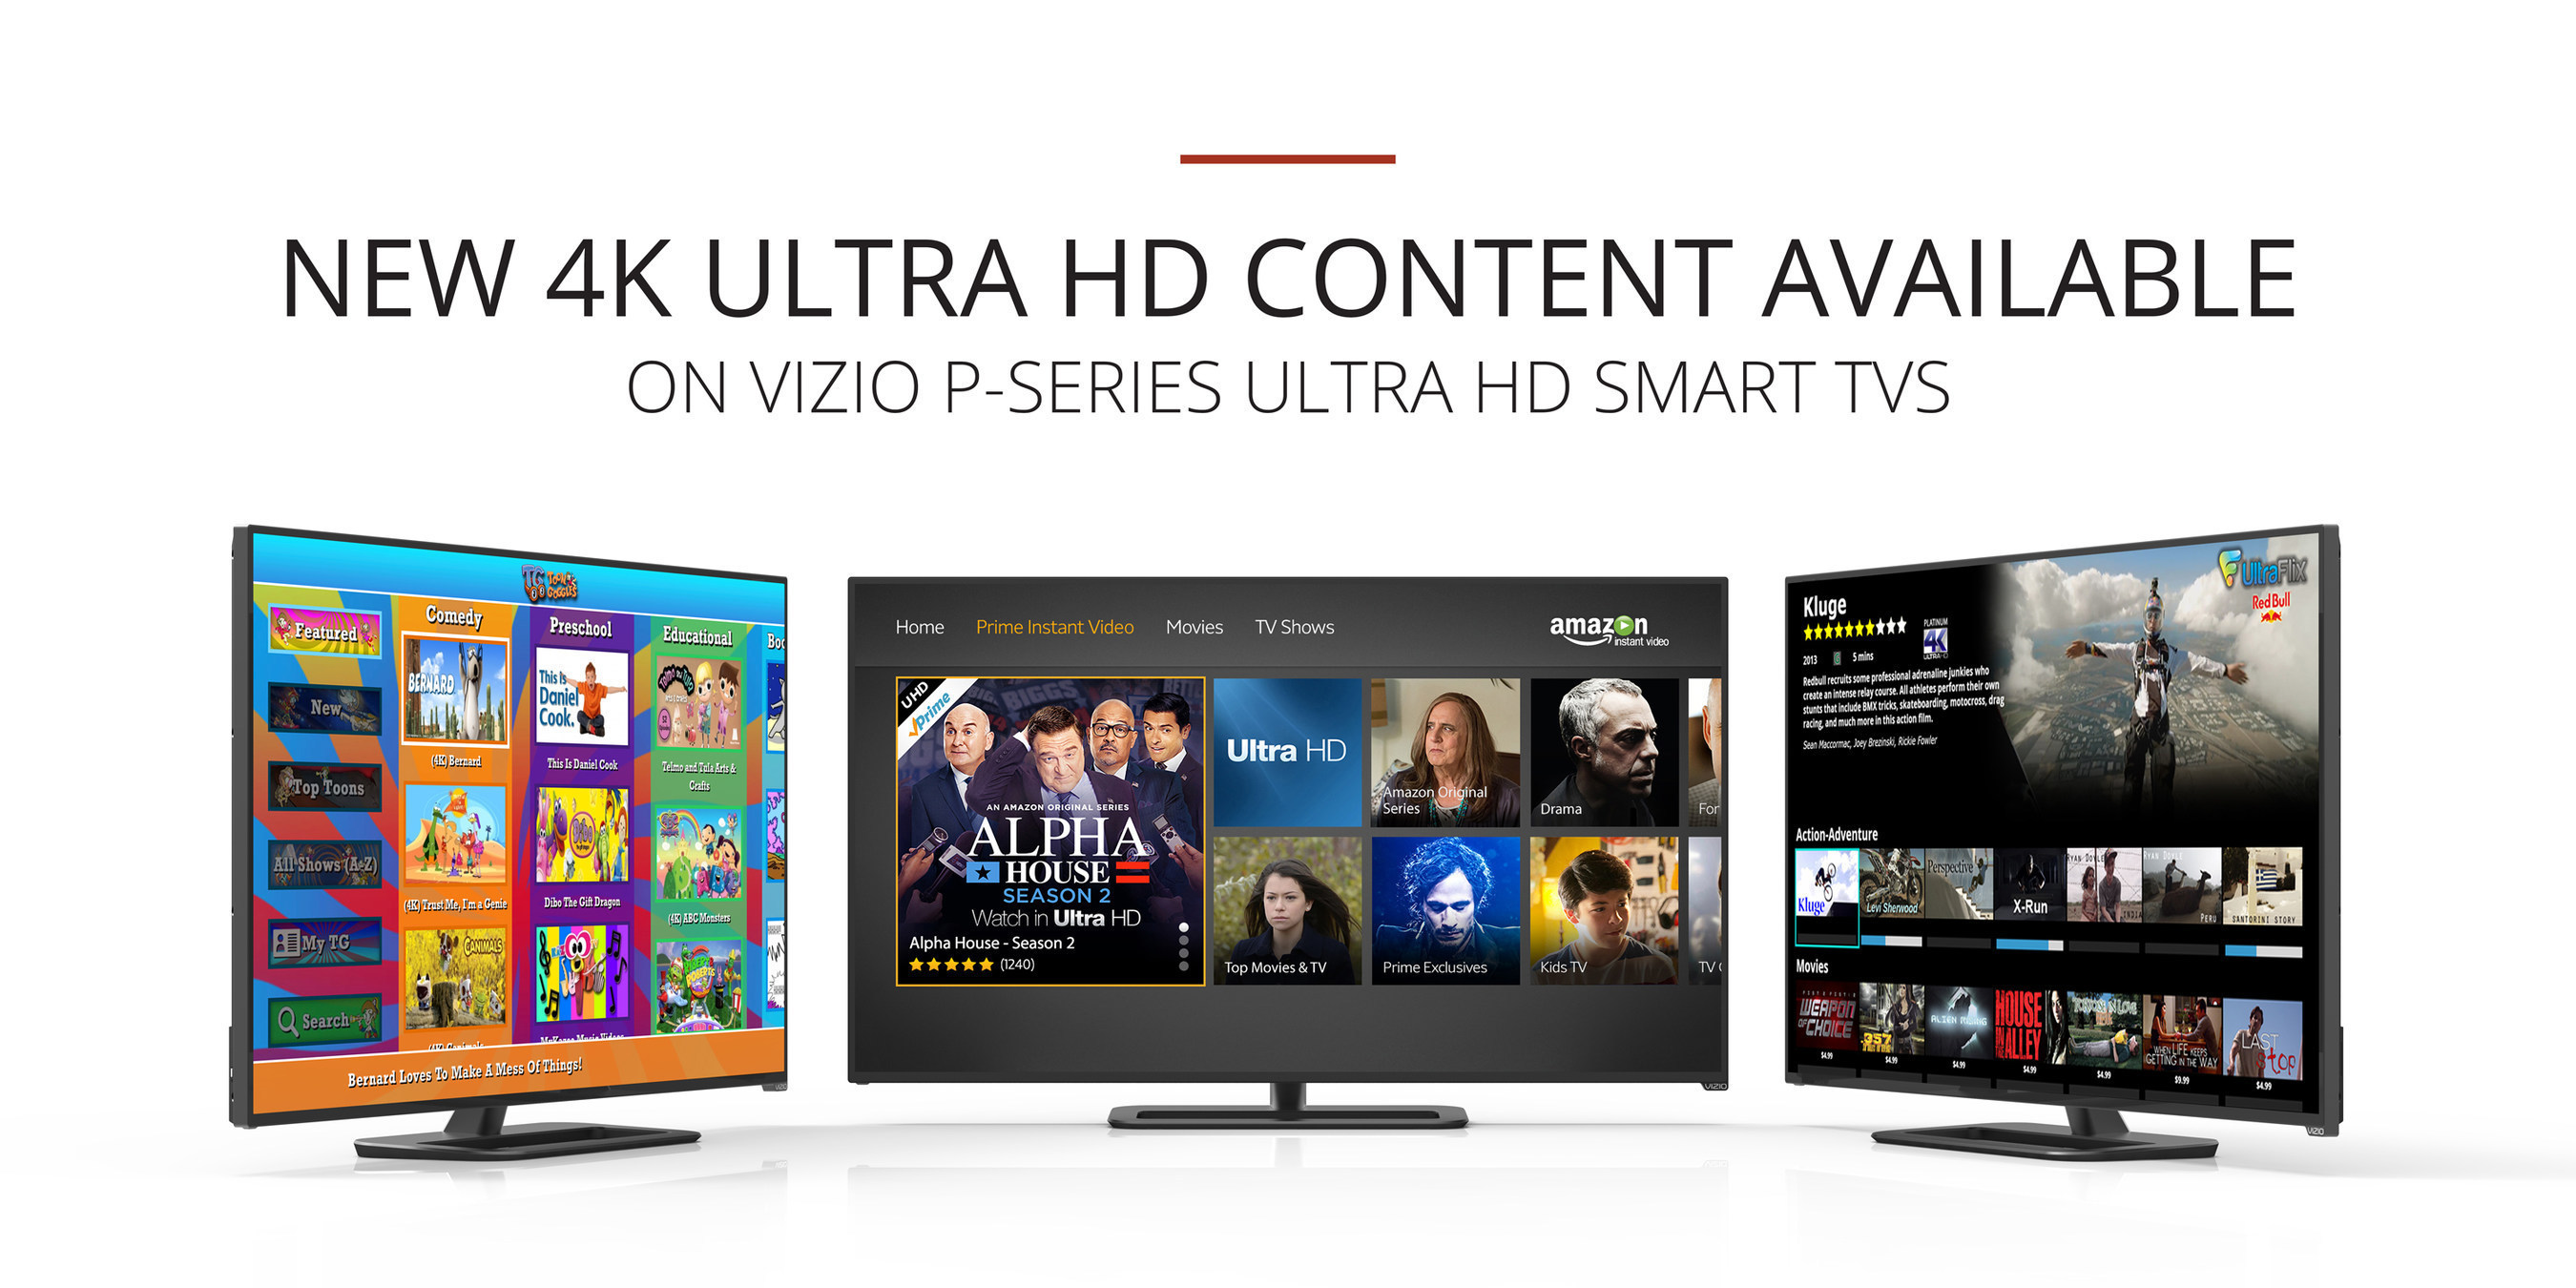 Vizio Adds New Apps Supporting 4k Content To Vizio Internet Apps